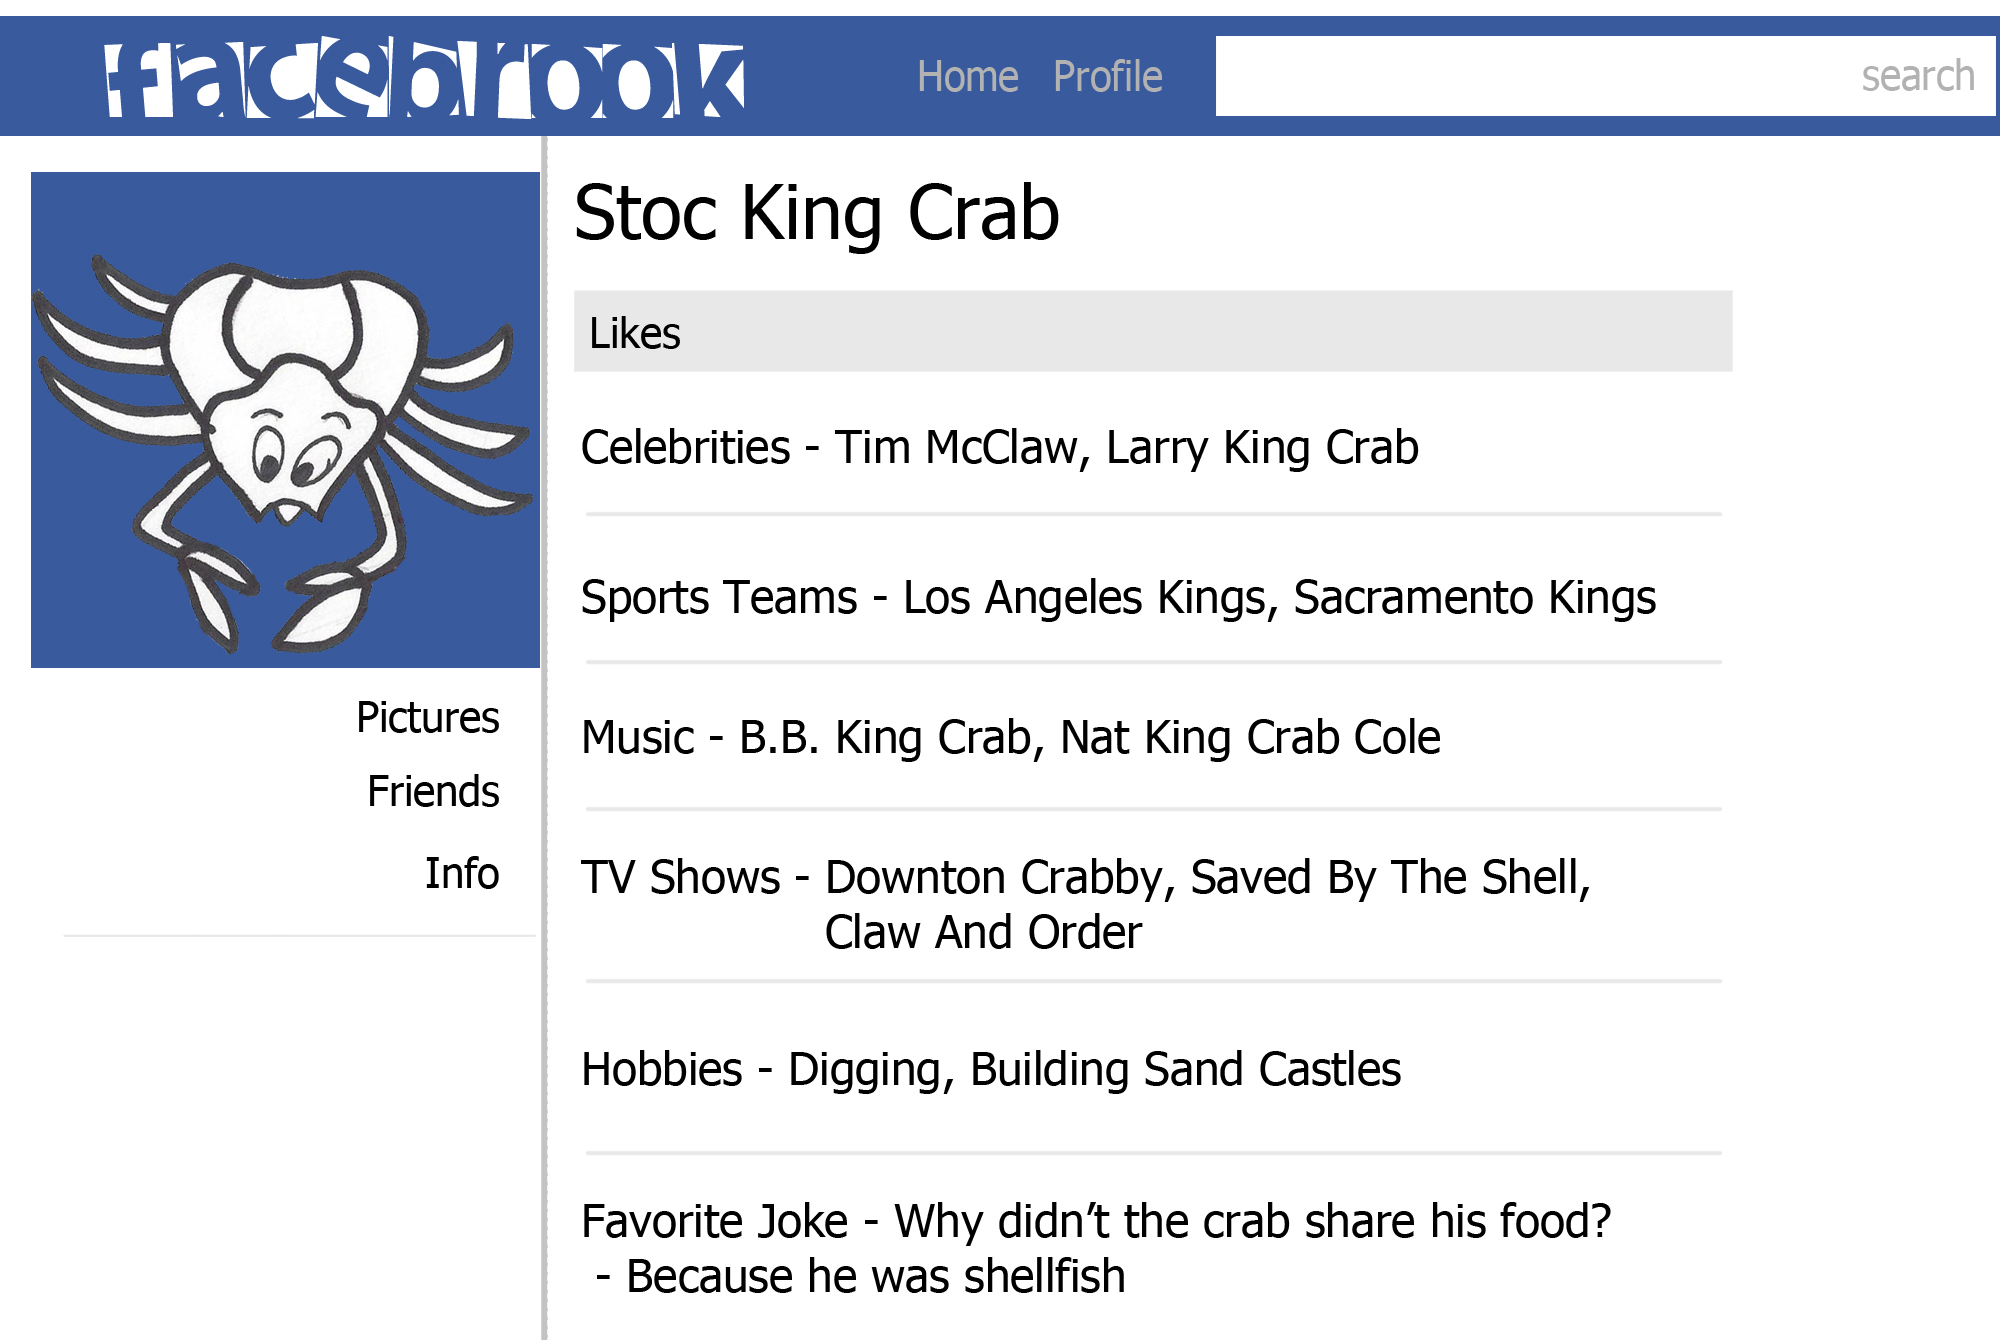 Stoc King Crab Profile color